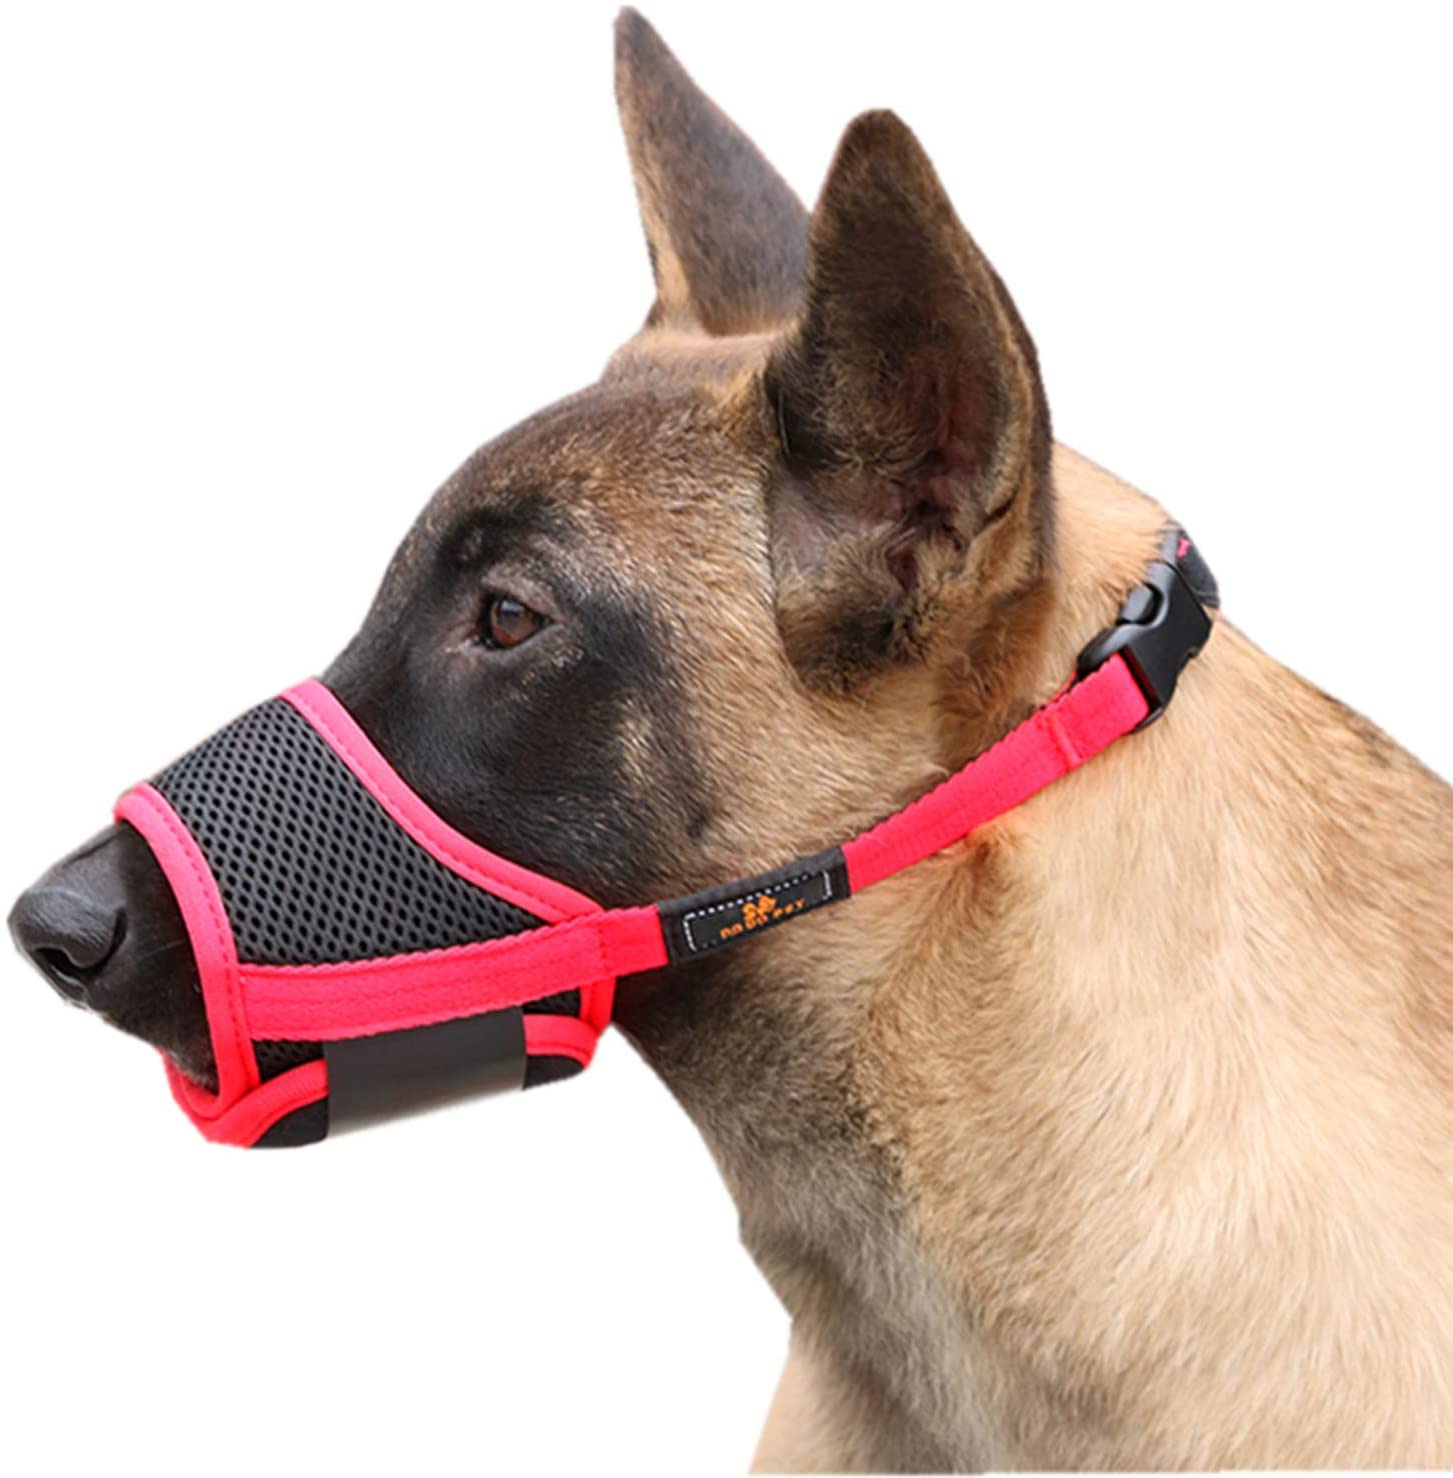 Cilkus Dog Muzzle Nylon Mesh Adjustable Breathable Soft Dog Muzzle, Anti-bite, Anti-Barking, Anti-Chaos, Pet Anti-Barking Muzzle, 4 Sizes for Large, Medium and Small Dogs